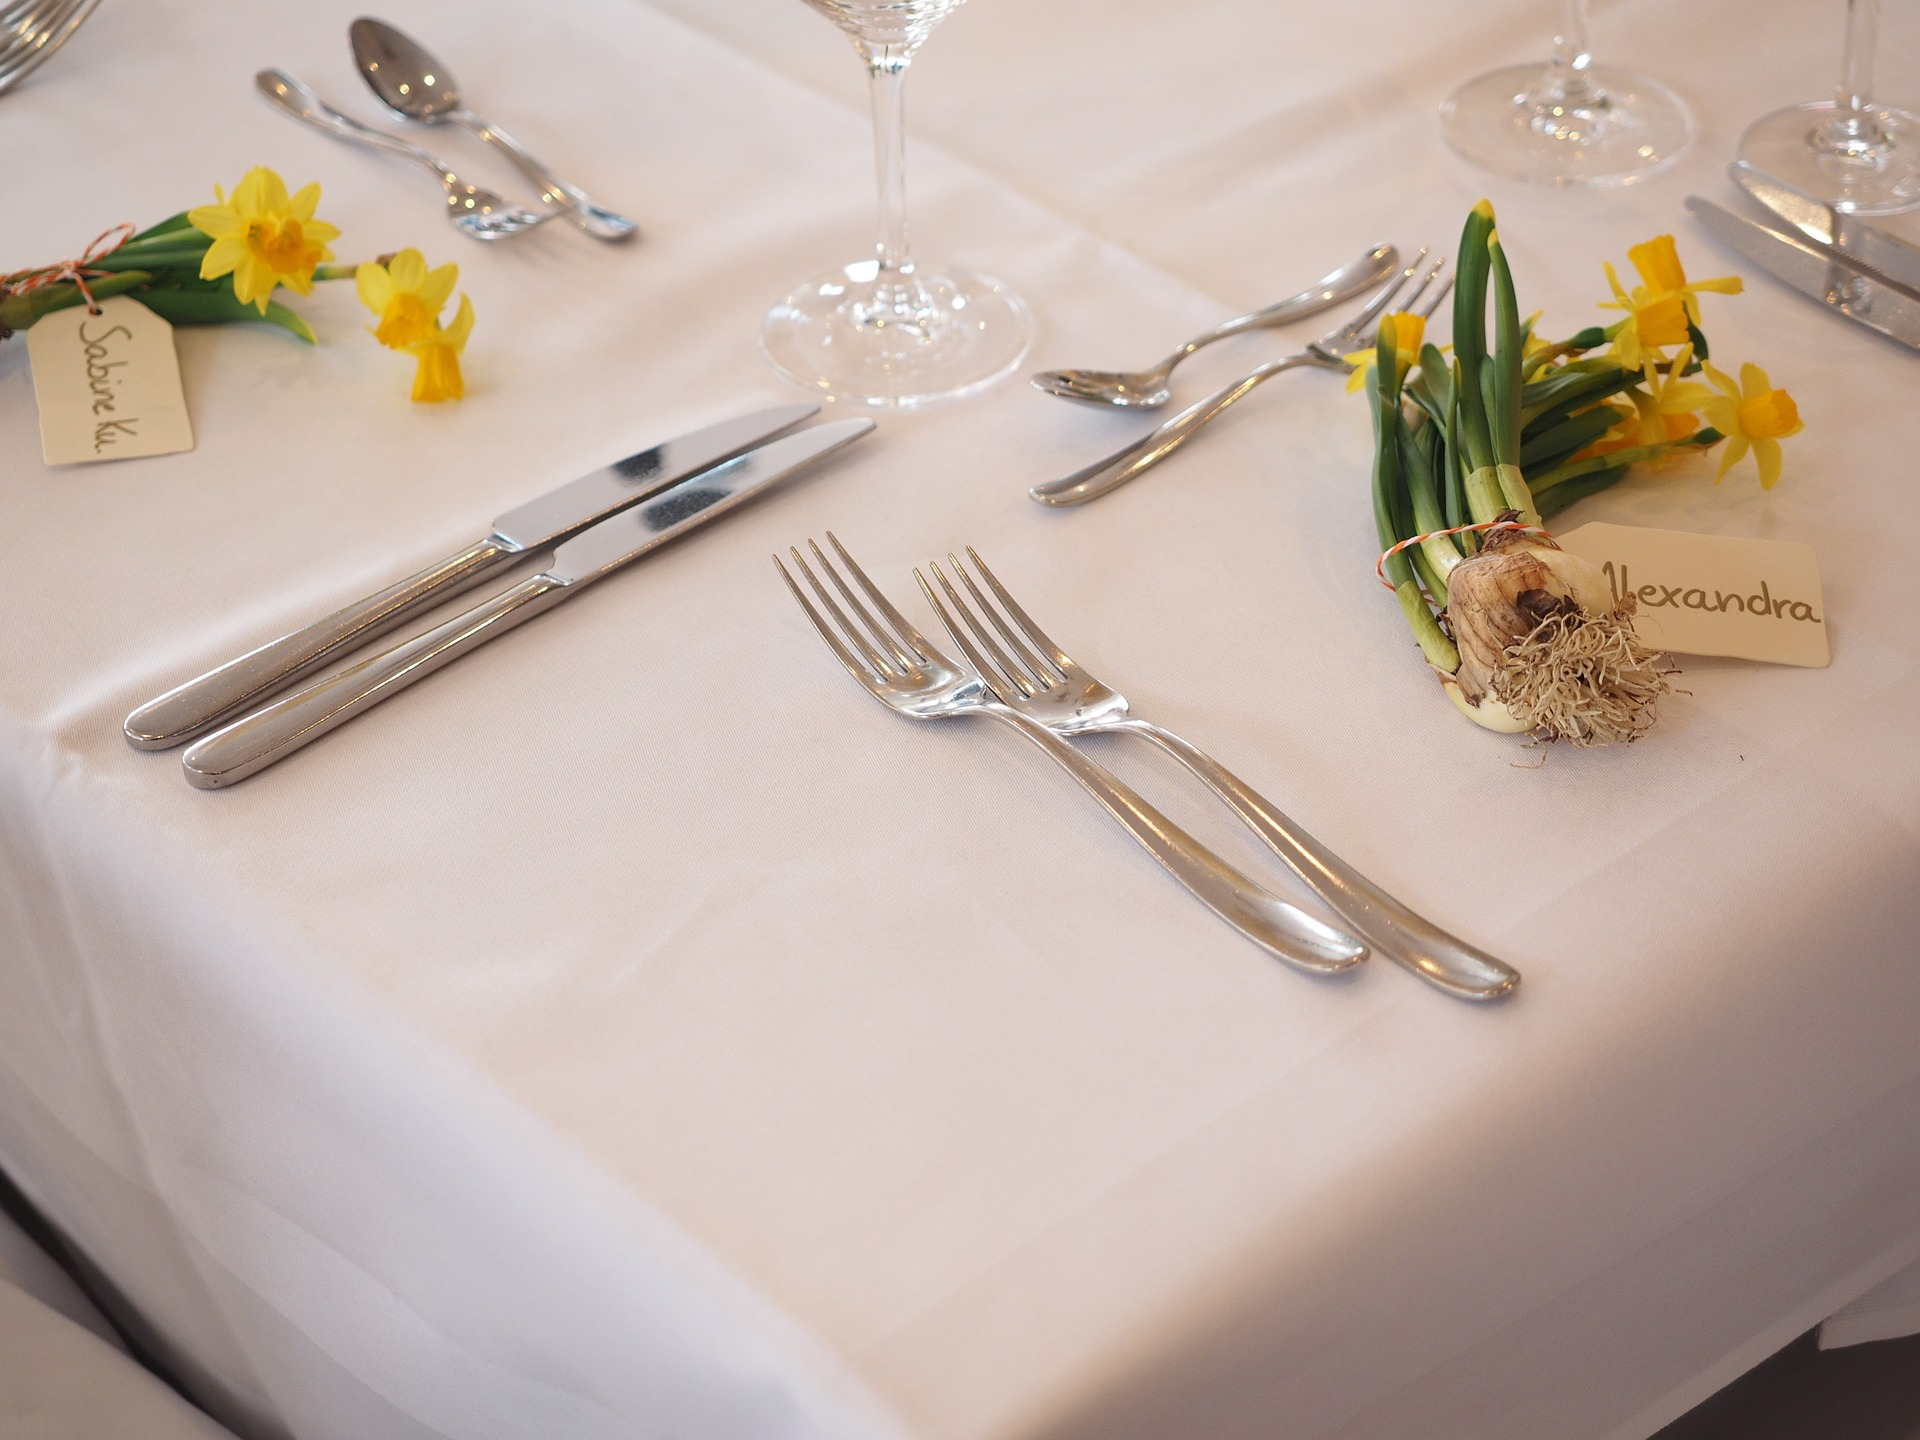 Fresh flowers make surprising and quirky place settings.